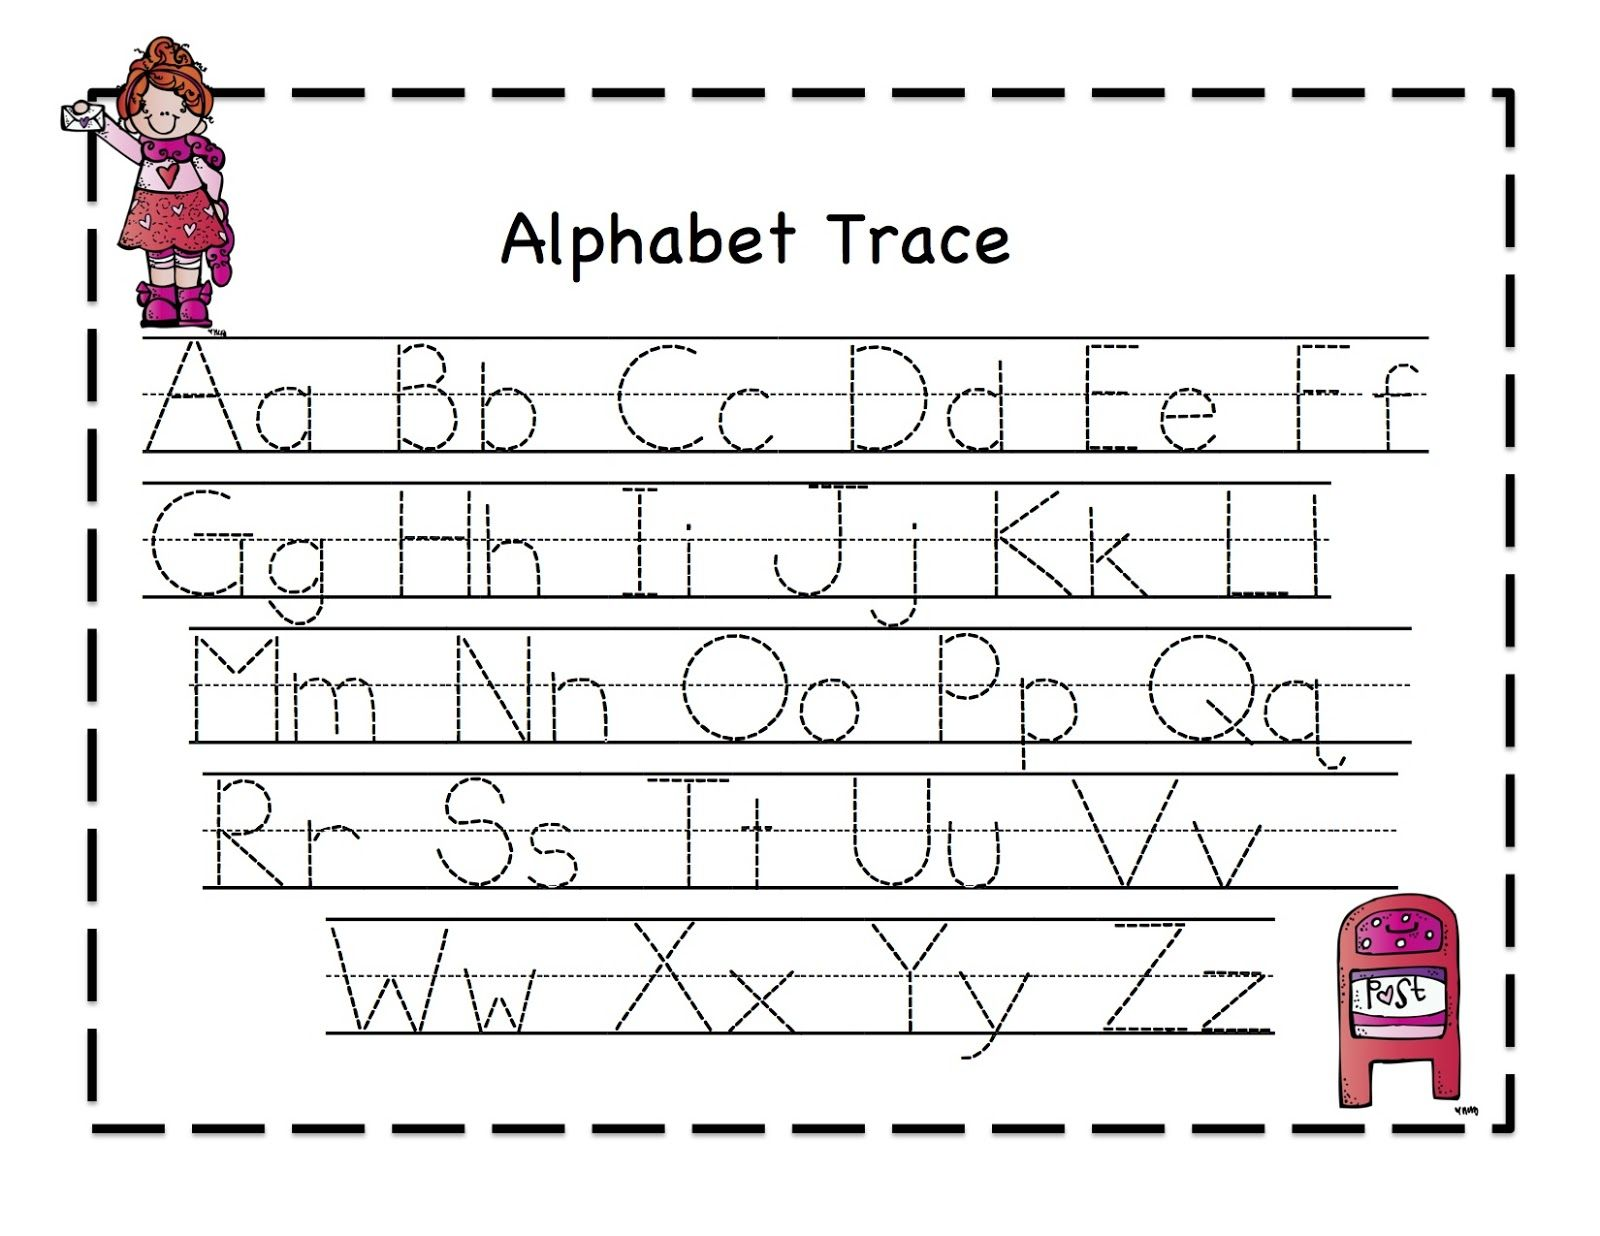 Worksheets Abc Writing Worksheets abc tracing sheets for preschool kids kiddo shelter alphabet shelter